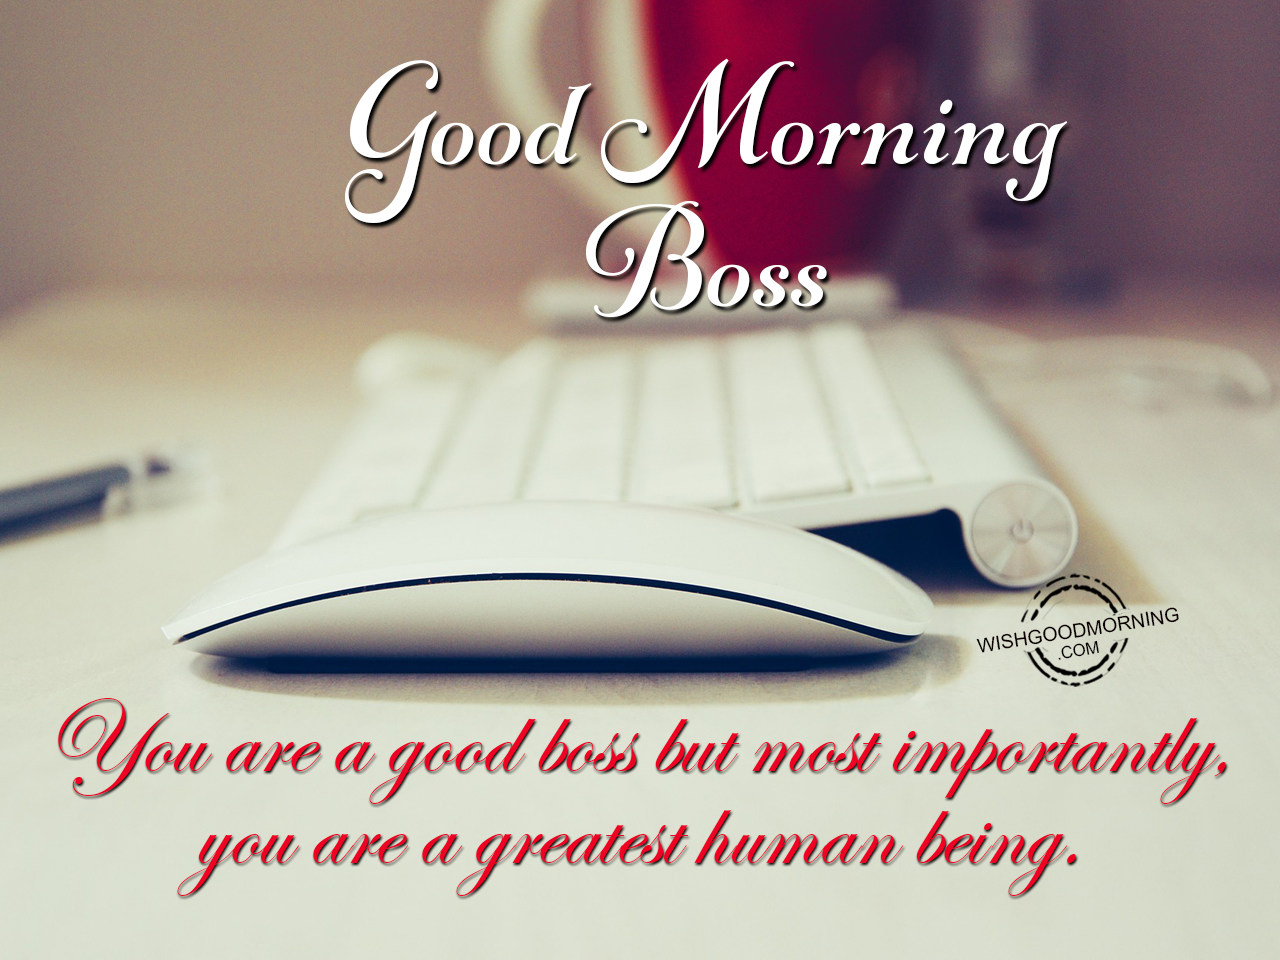 Happy birthday pictures happy birthday sms happy birthday wishes - Good Morning Wishes For Boss Good Morning Pictures